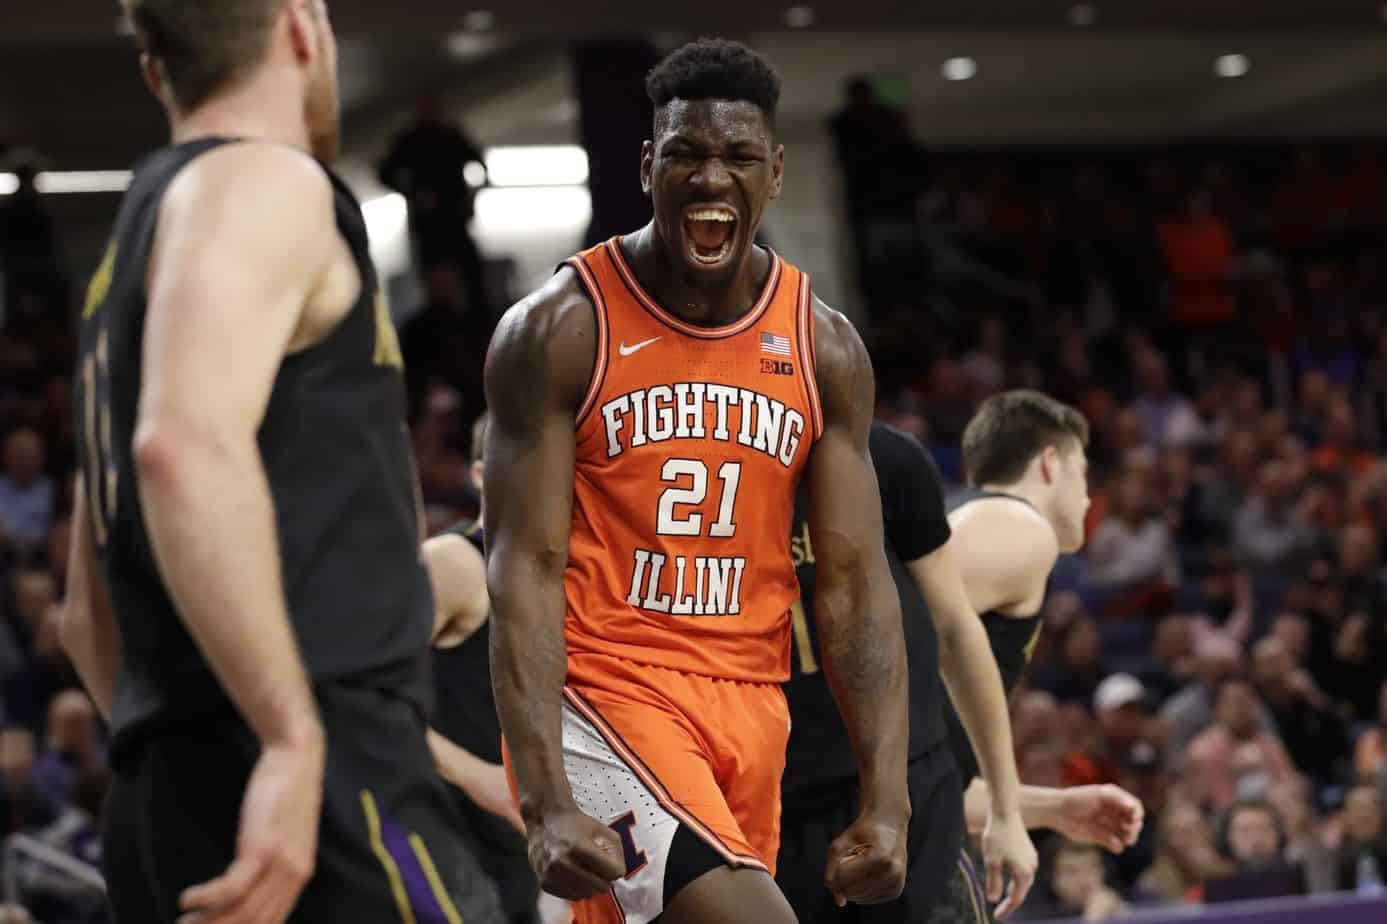 Illinois star center will reportedly be announcing his plans to return to Illinois for one more season sometime today